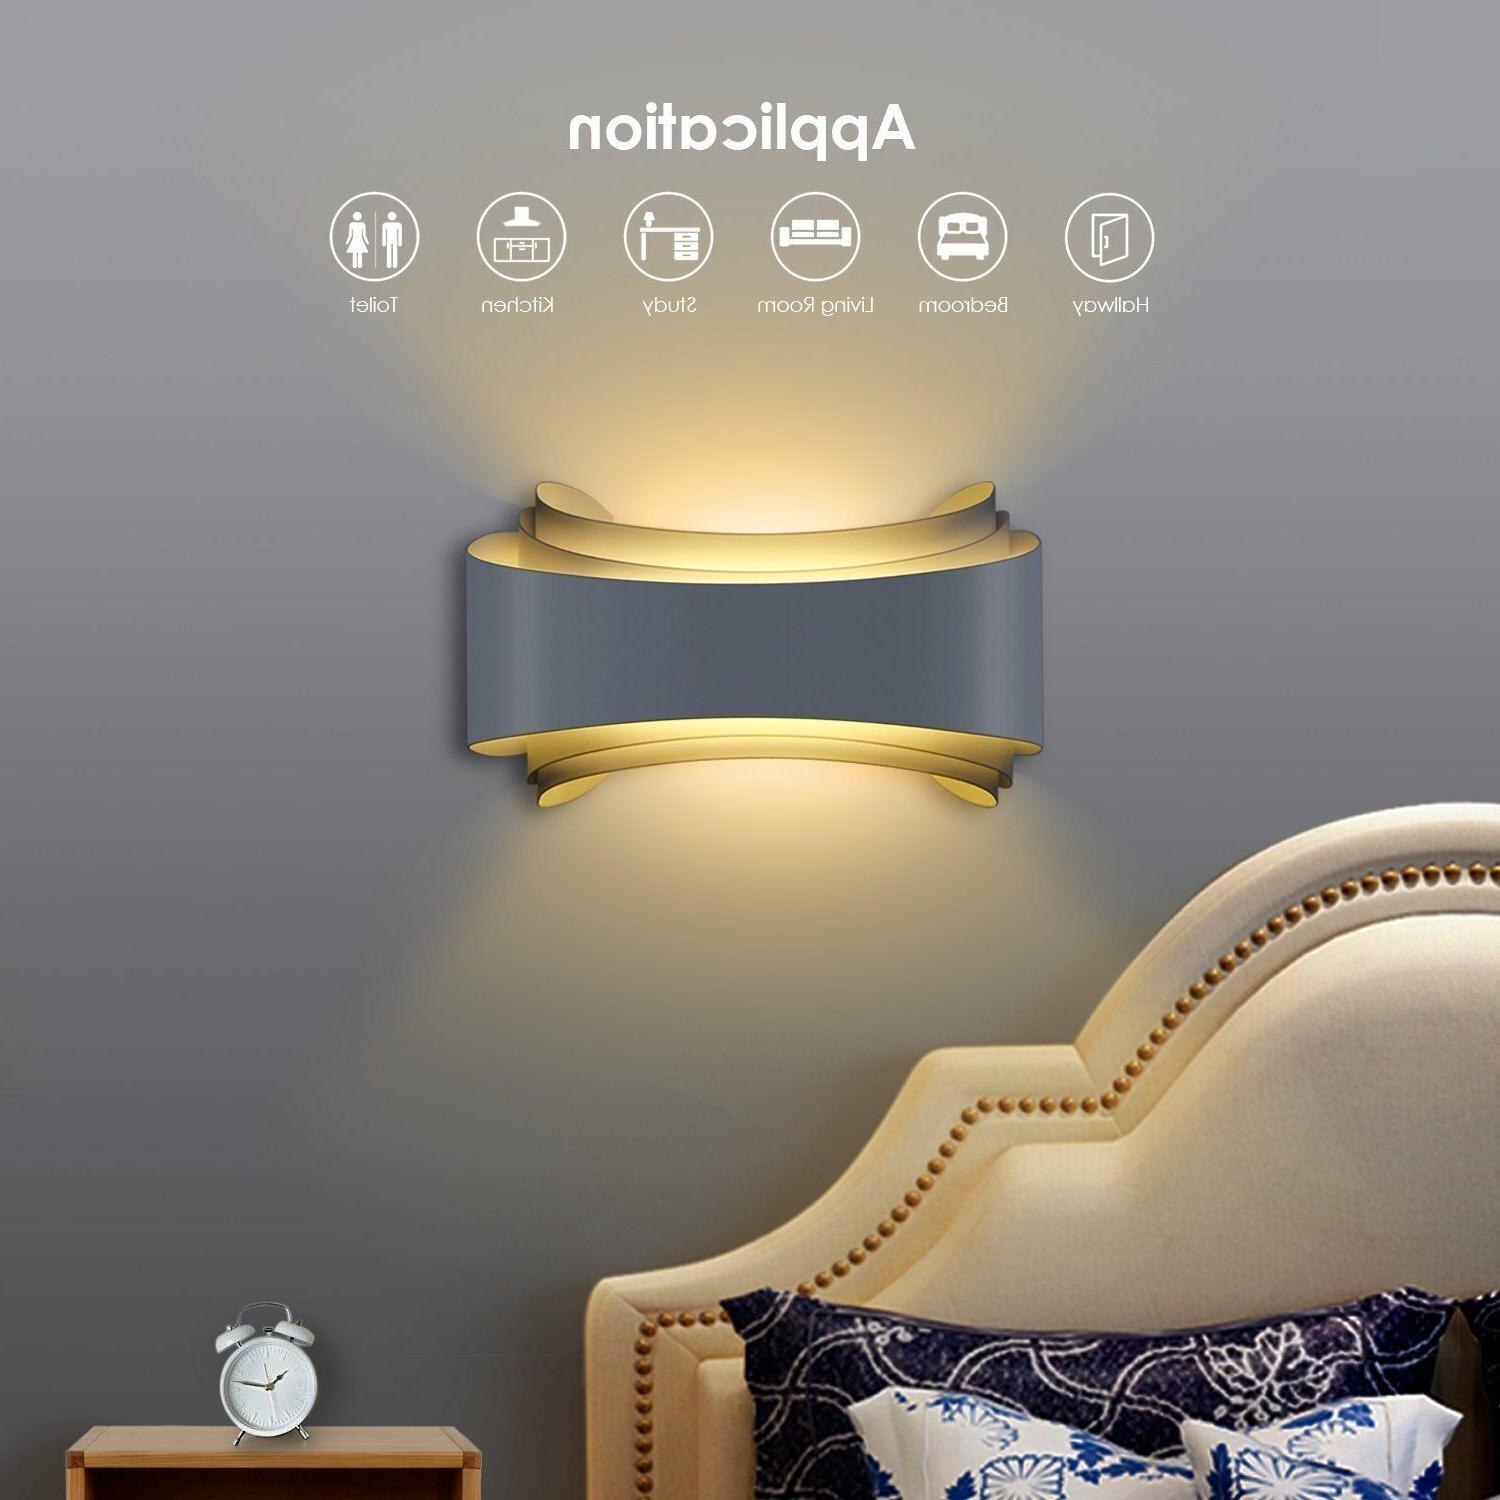 Albrillo Wall Sconce Wall Lights 10W Night Lights White, 800 Lumen